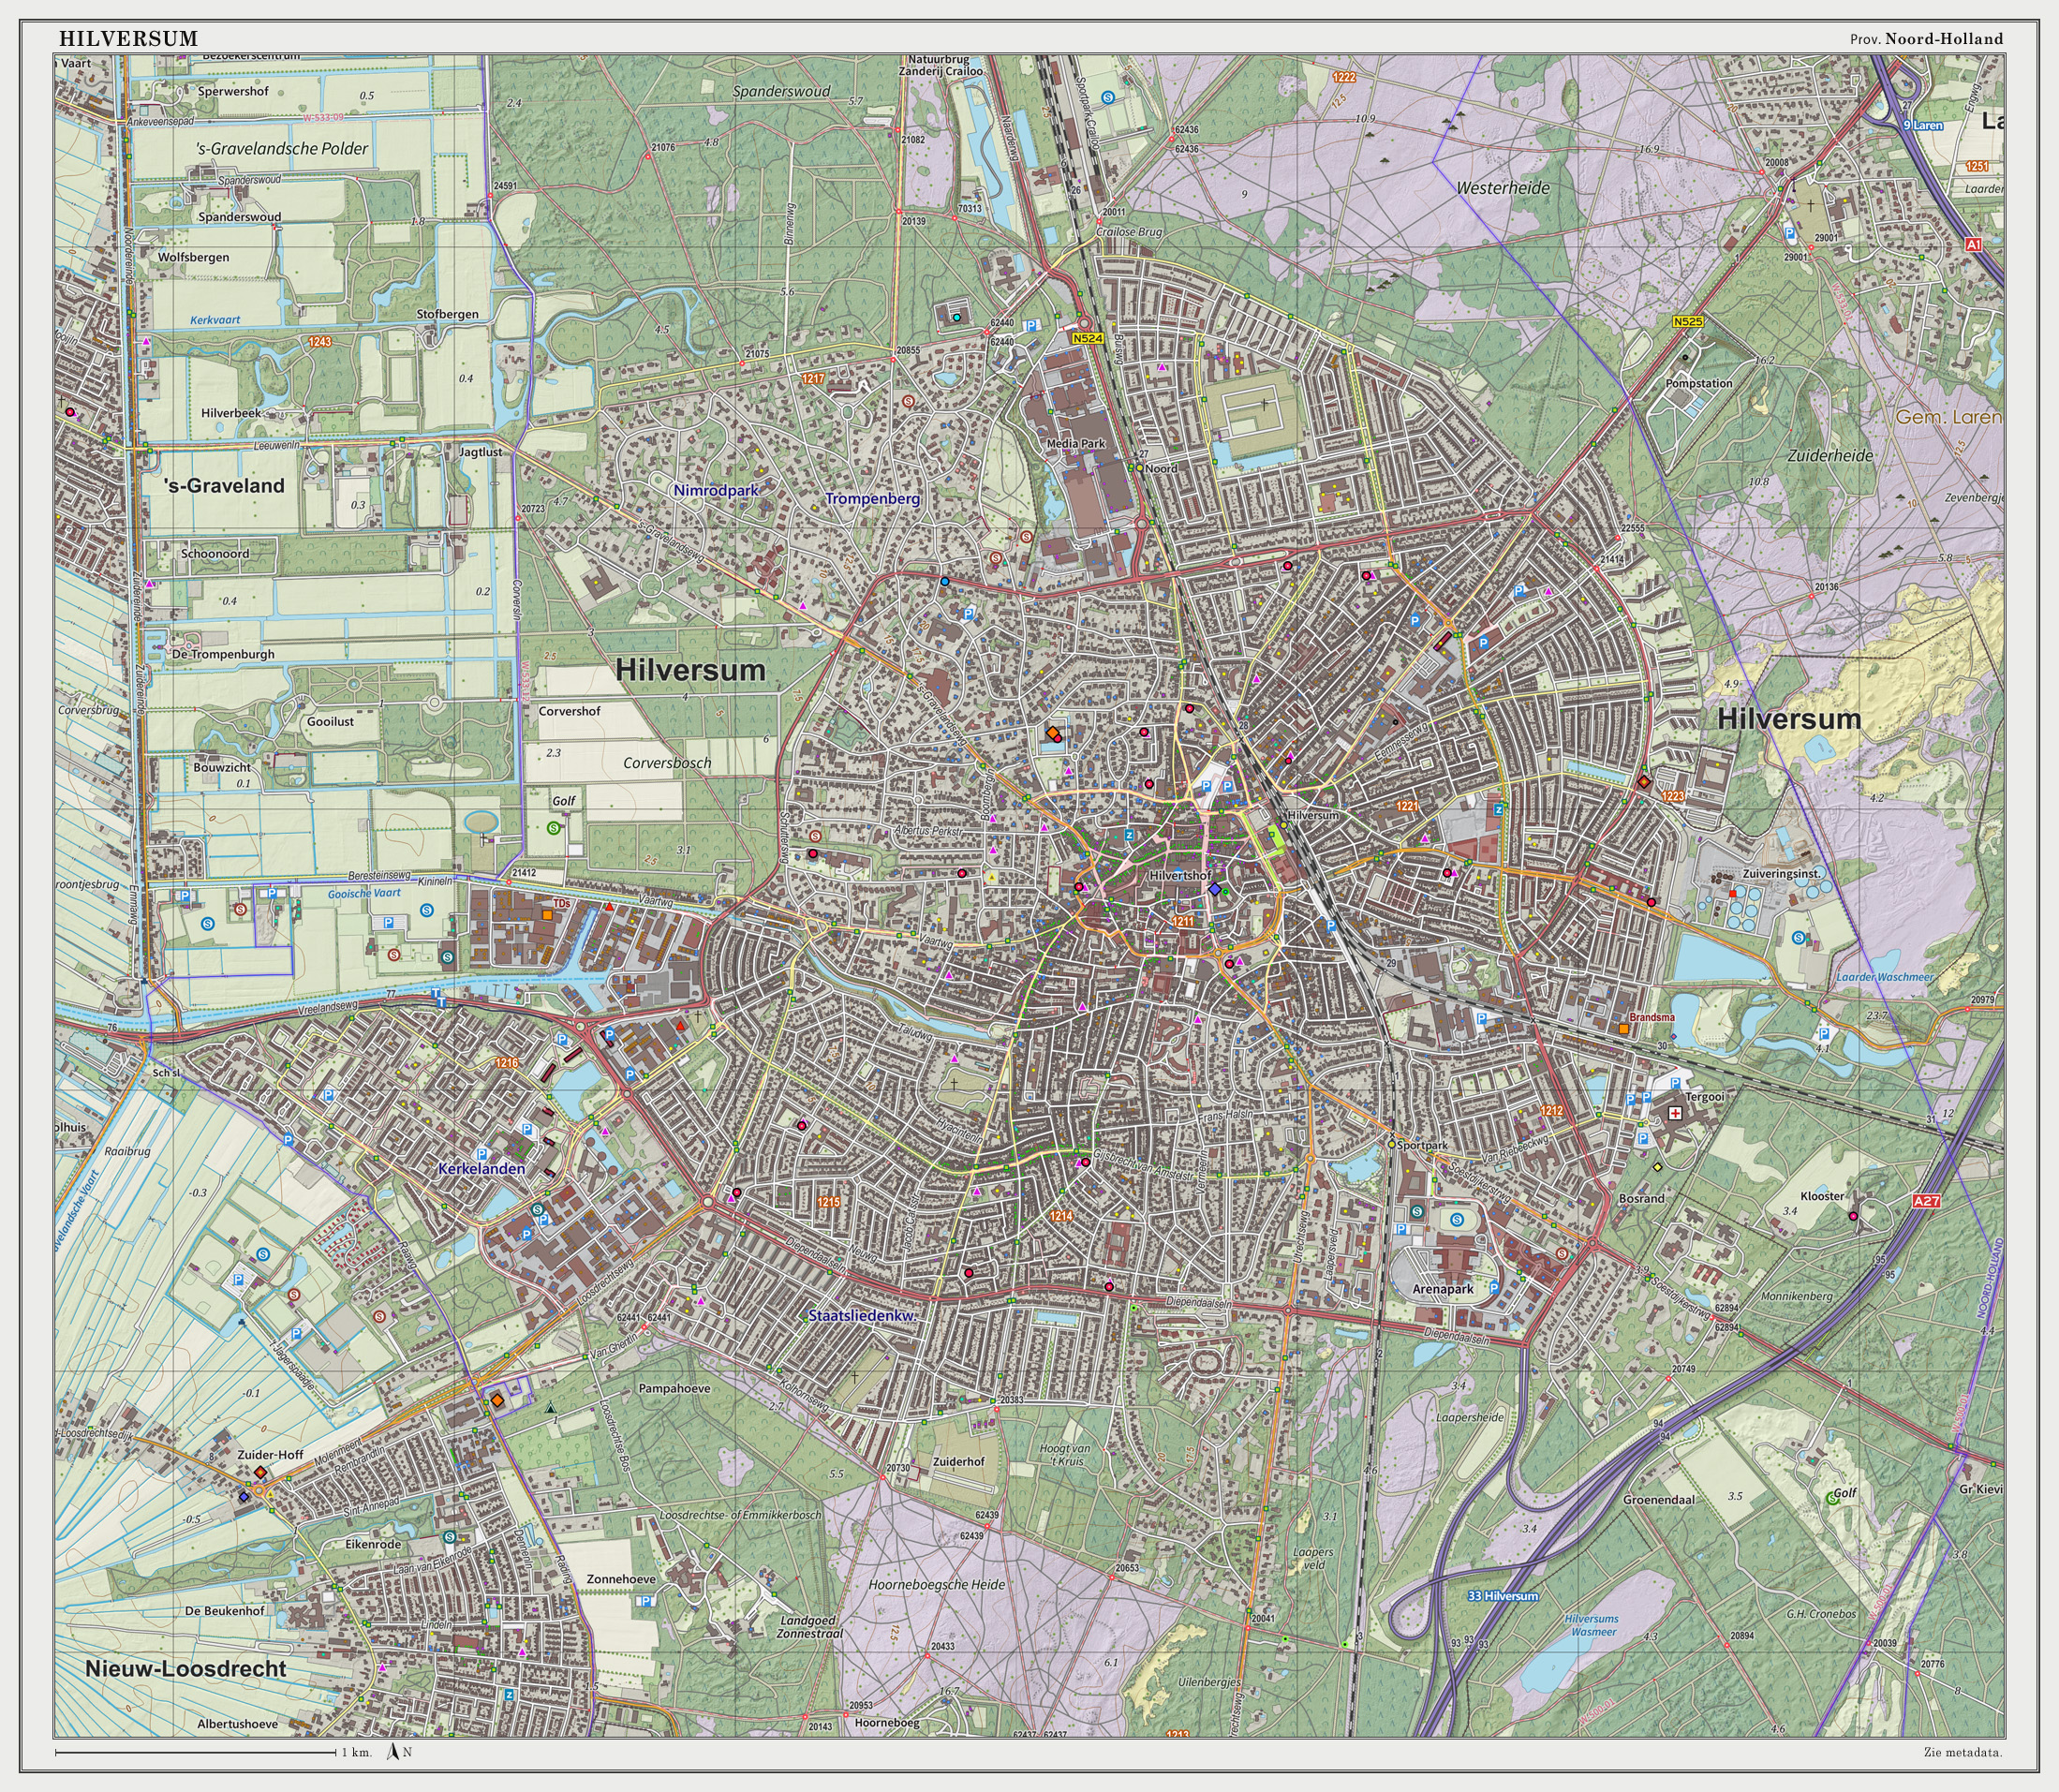 Dutch Topographic map of Hilversum (town), March 2014